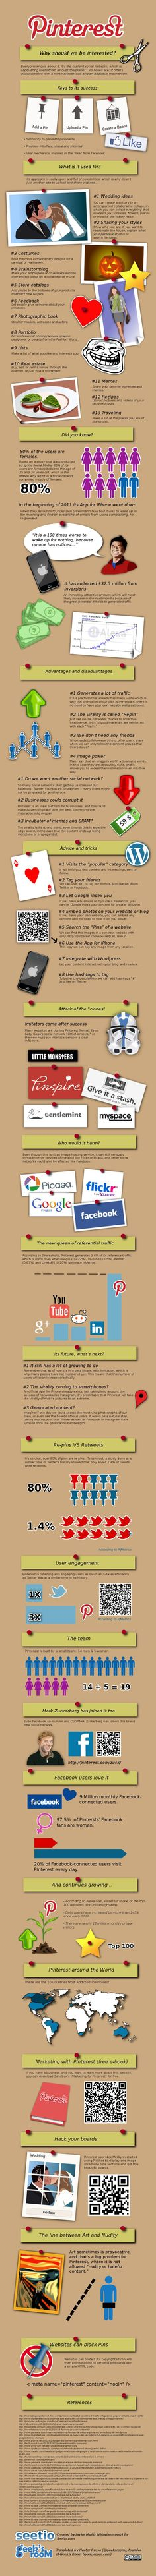 Pinterest (Infographic) - Why should we be interested?  (English translation of Spanish site Seetio by Javier Munoz of Alicante, Spain.     #pinterest #socialmedia #internet